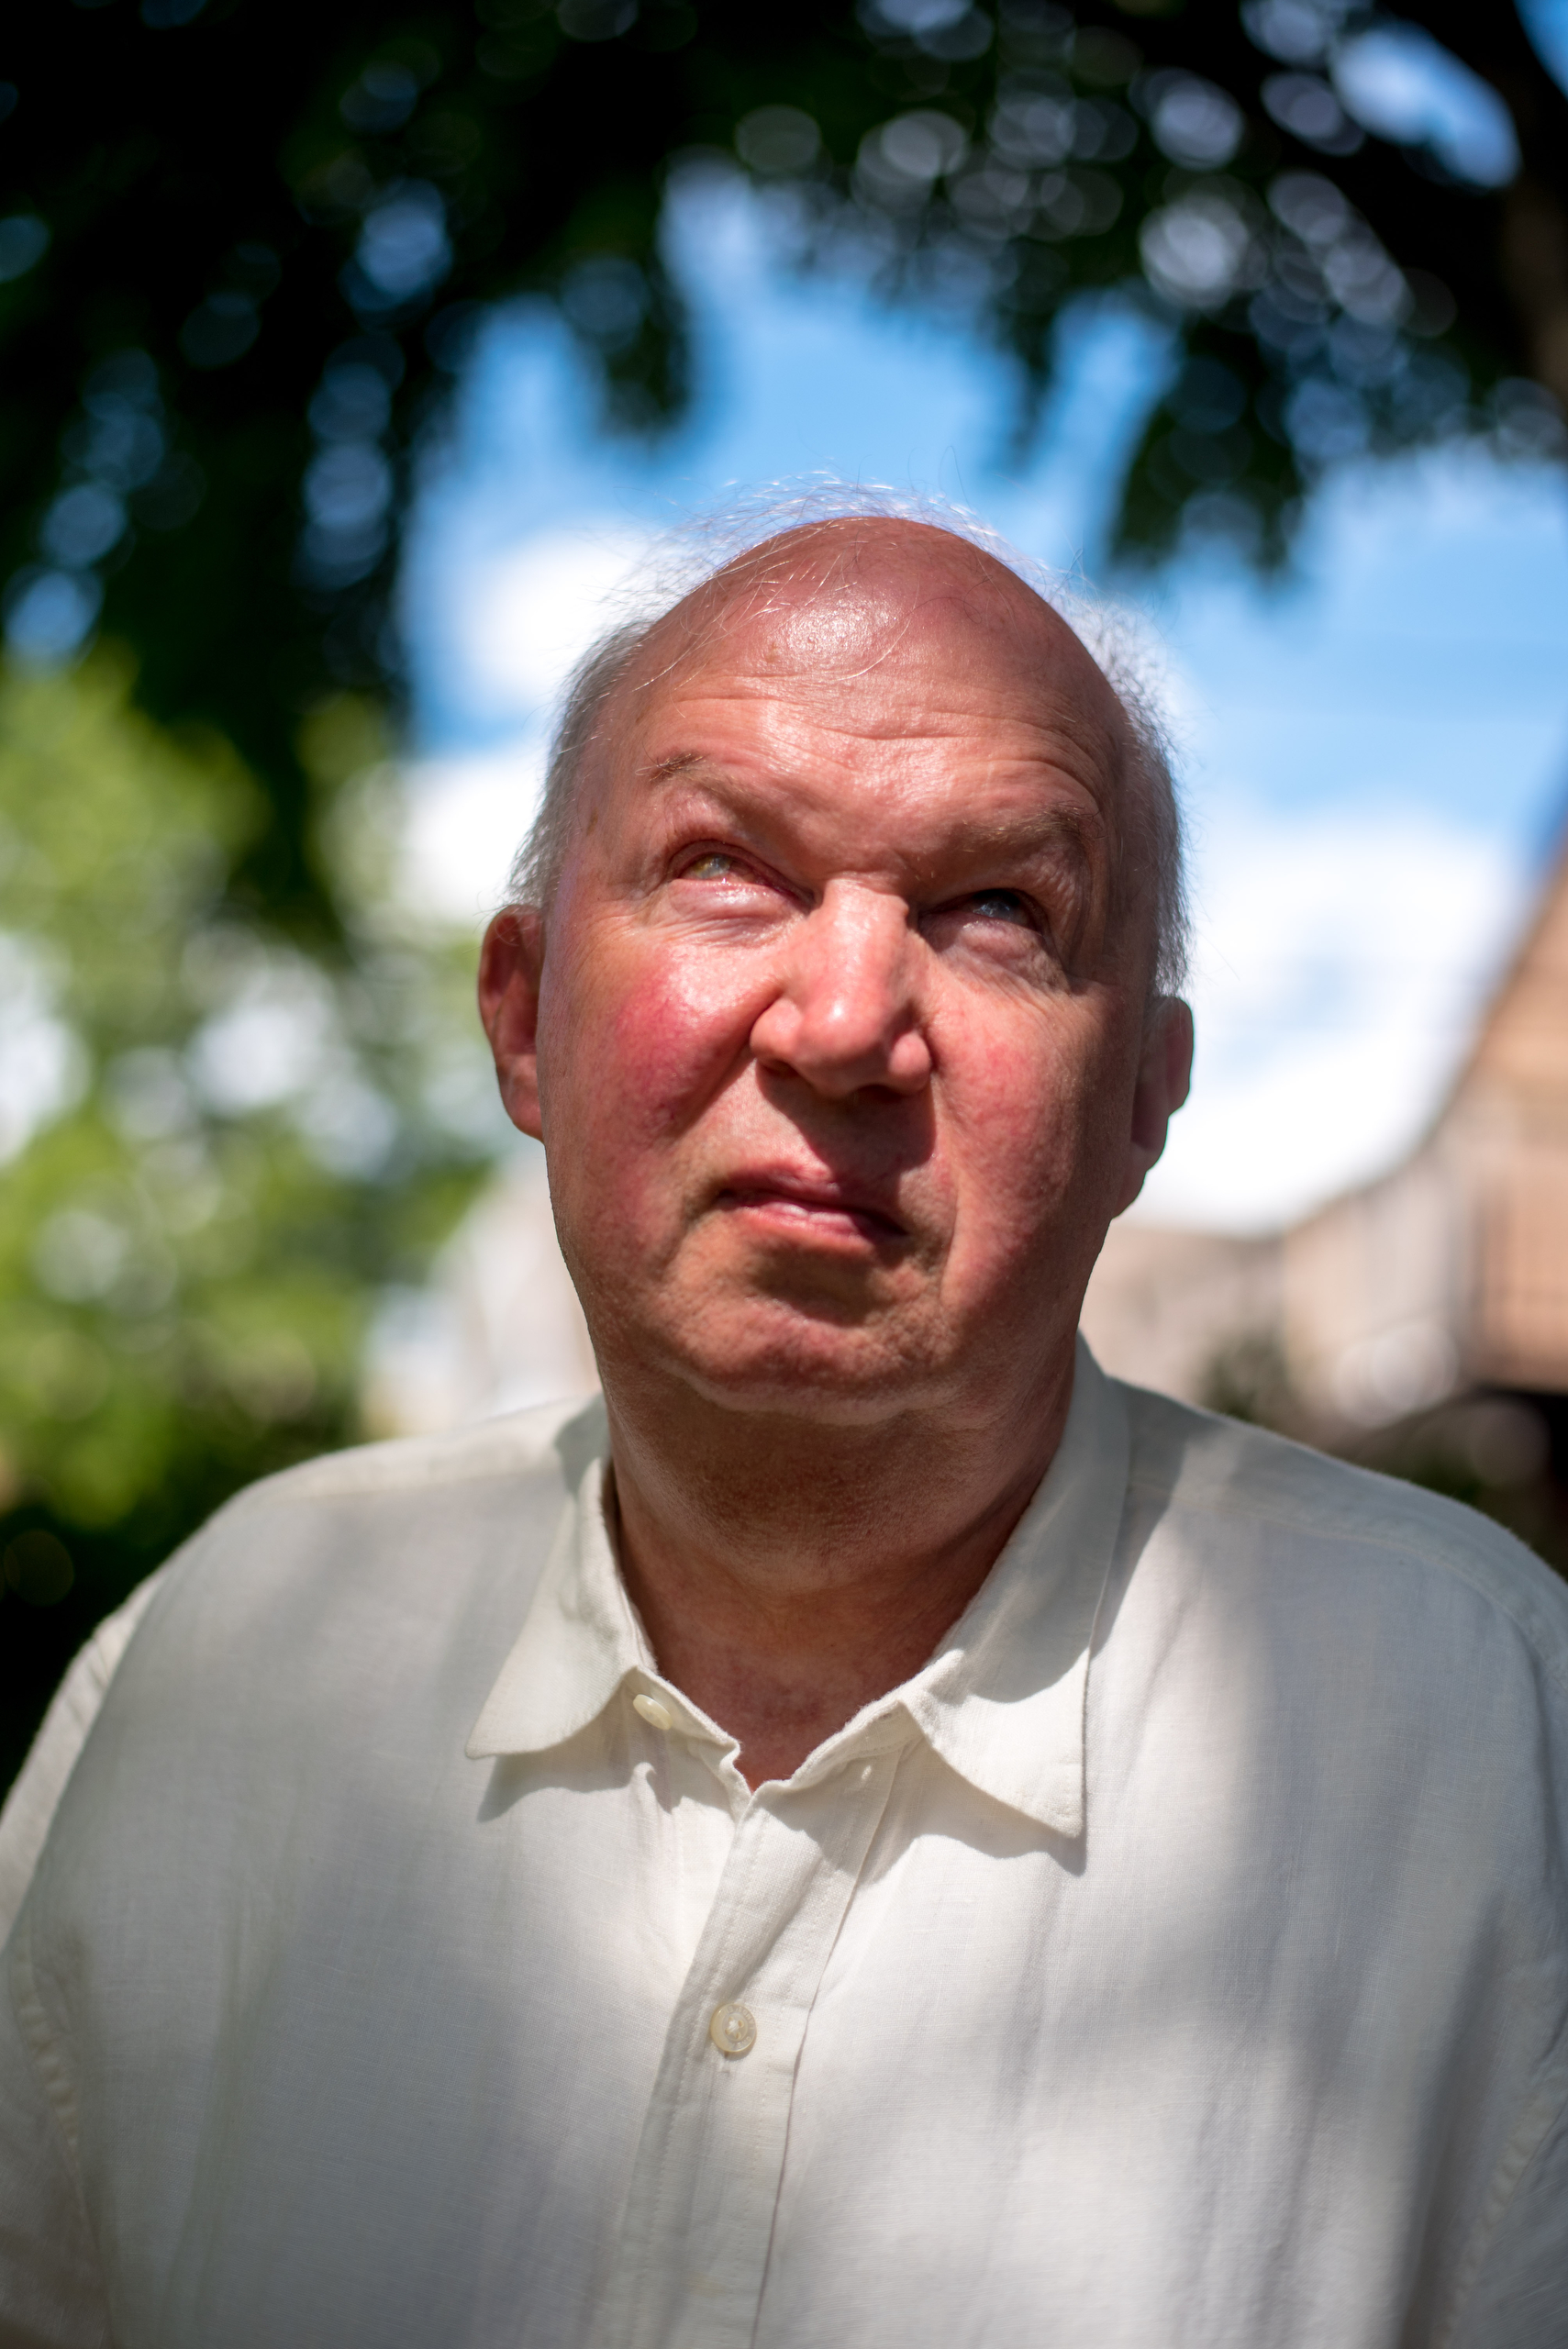 Don Natzke is seen in the backyard of his Shorewood, Wis., home on July 31, 2020. Natzke, who is blind, was unable to vote in Wisconsin's April 7 election as the COVID-19 pandemic kept him from his in-person polling place and he was unable to fill out an absentee ballot. Advocates fear that restrictive voting rules and the pandemic will keep some voters away from the polls on Nov. 3.